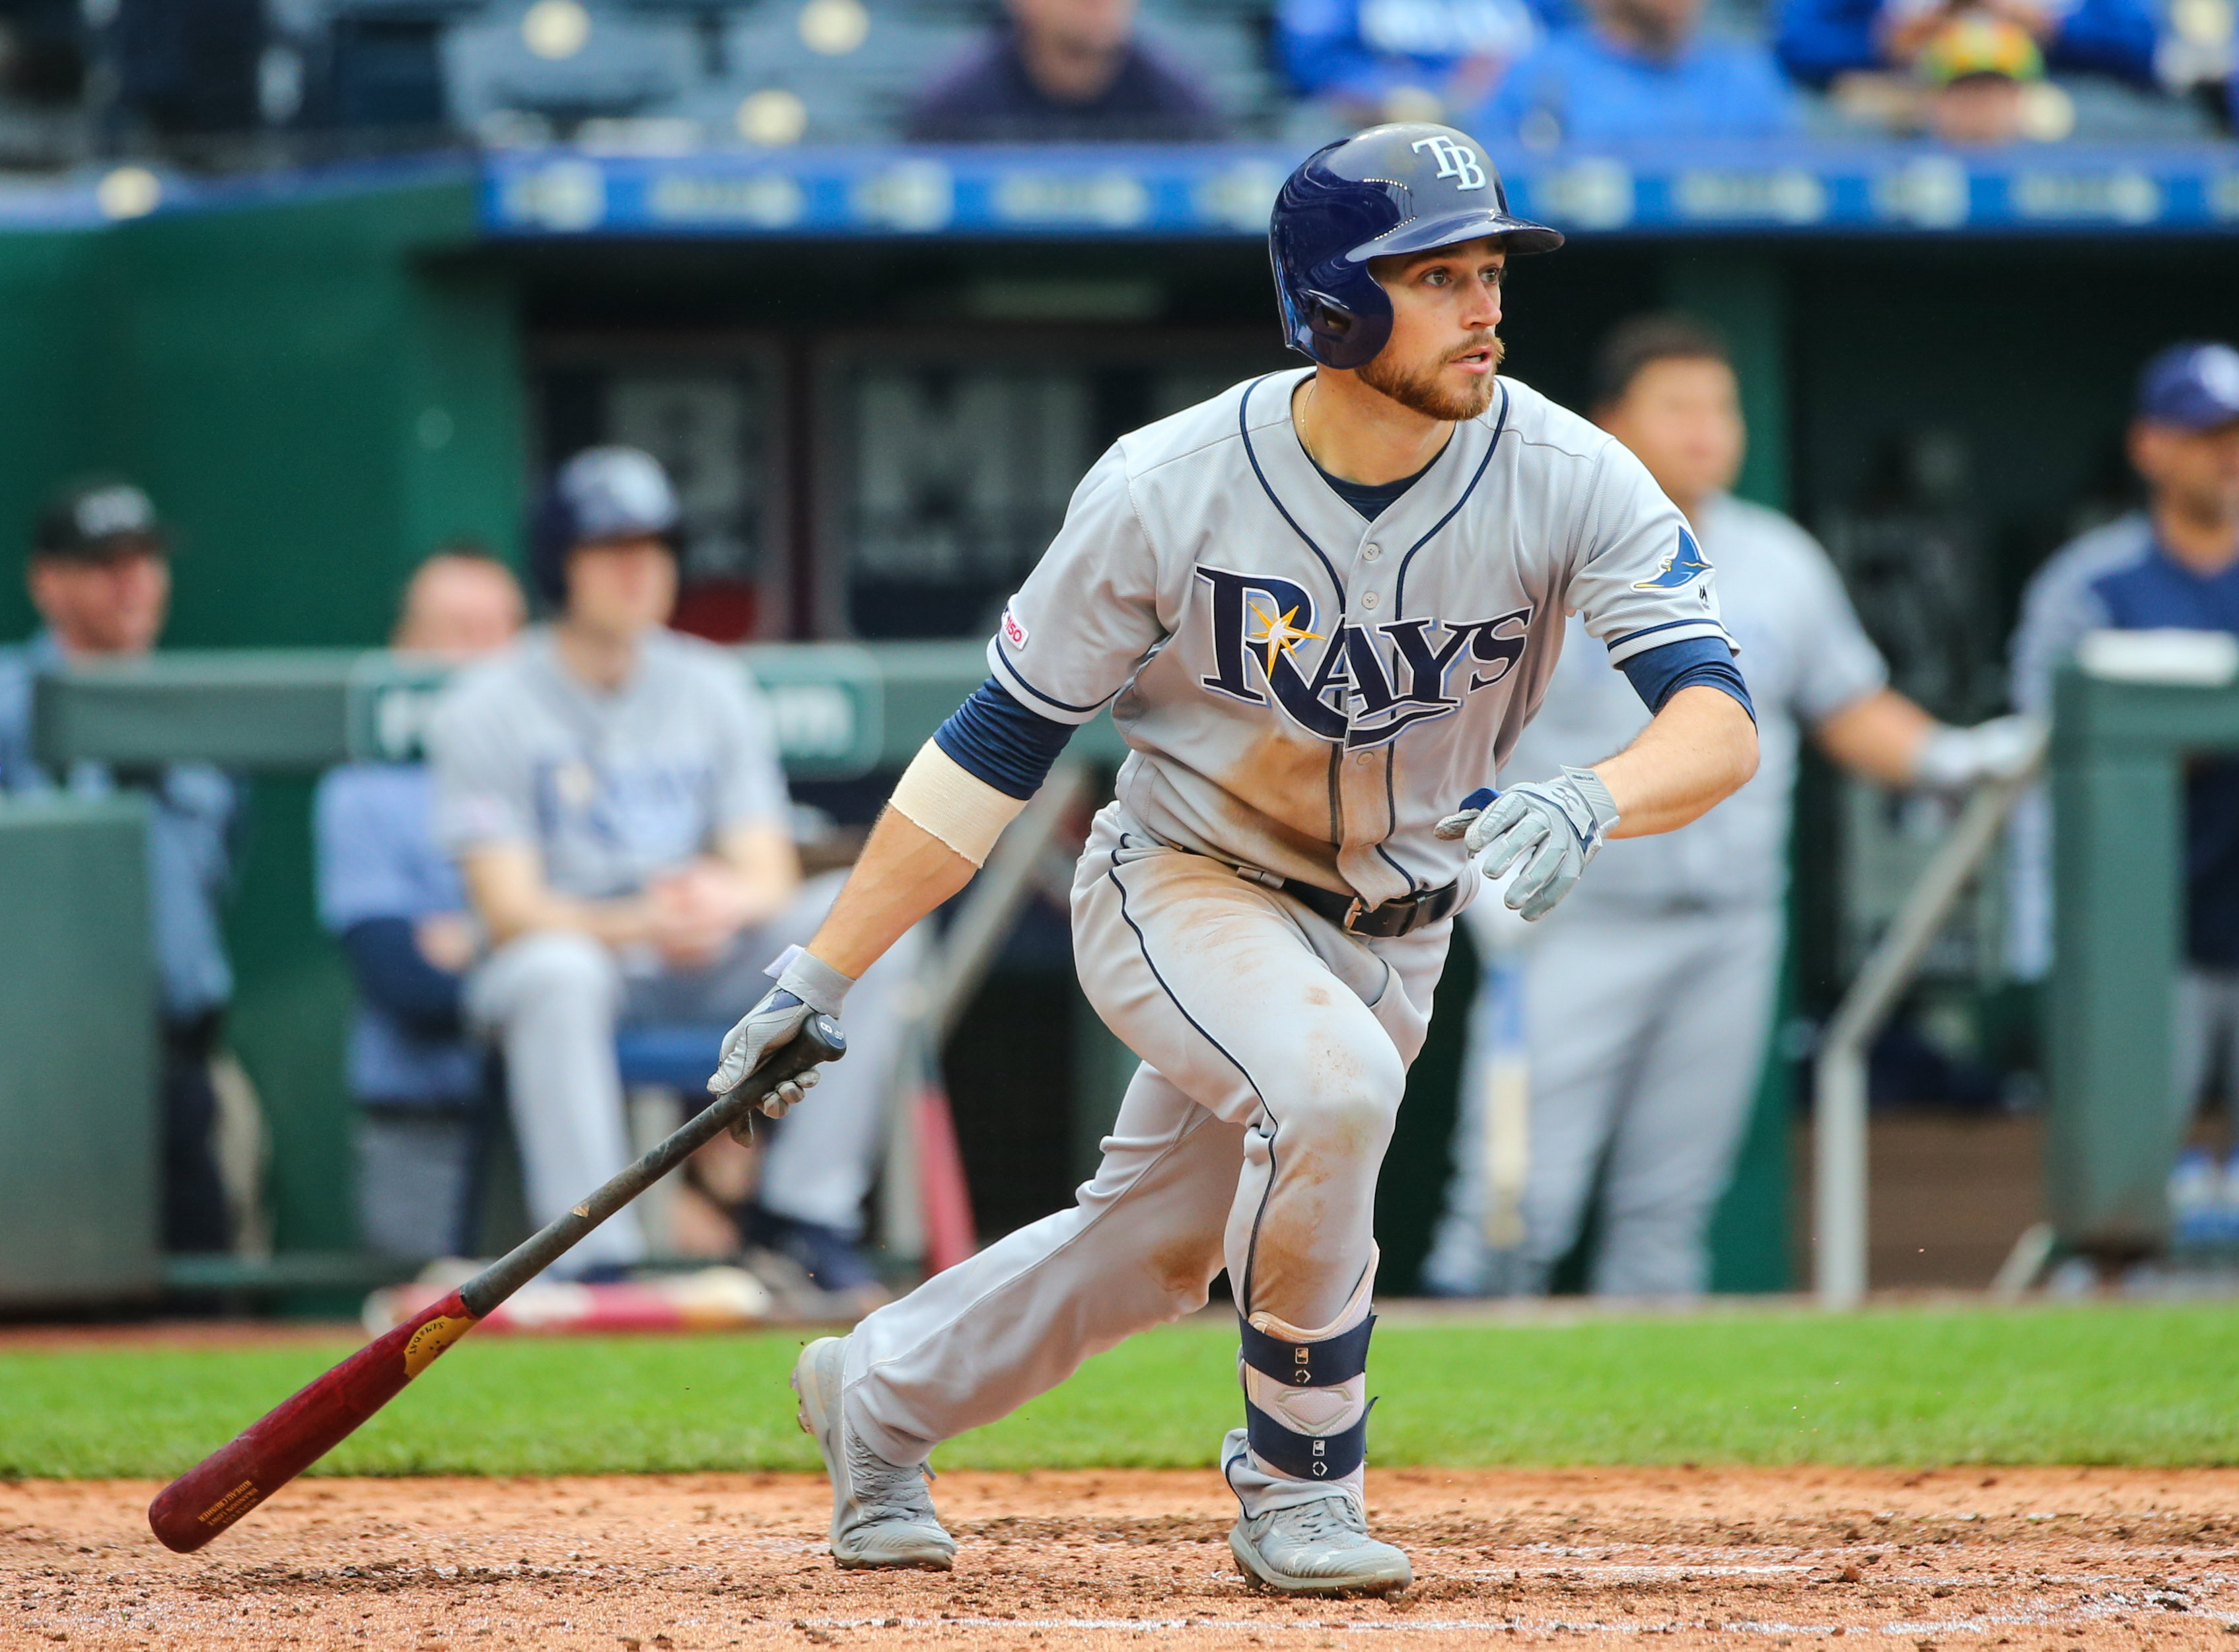 Blake Snell, Brandon Lowe lead Rays to game two World Series win